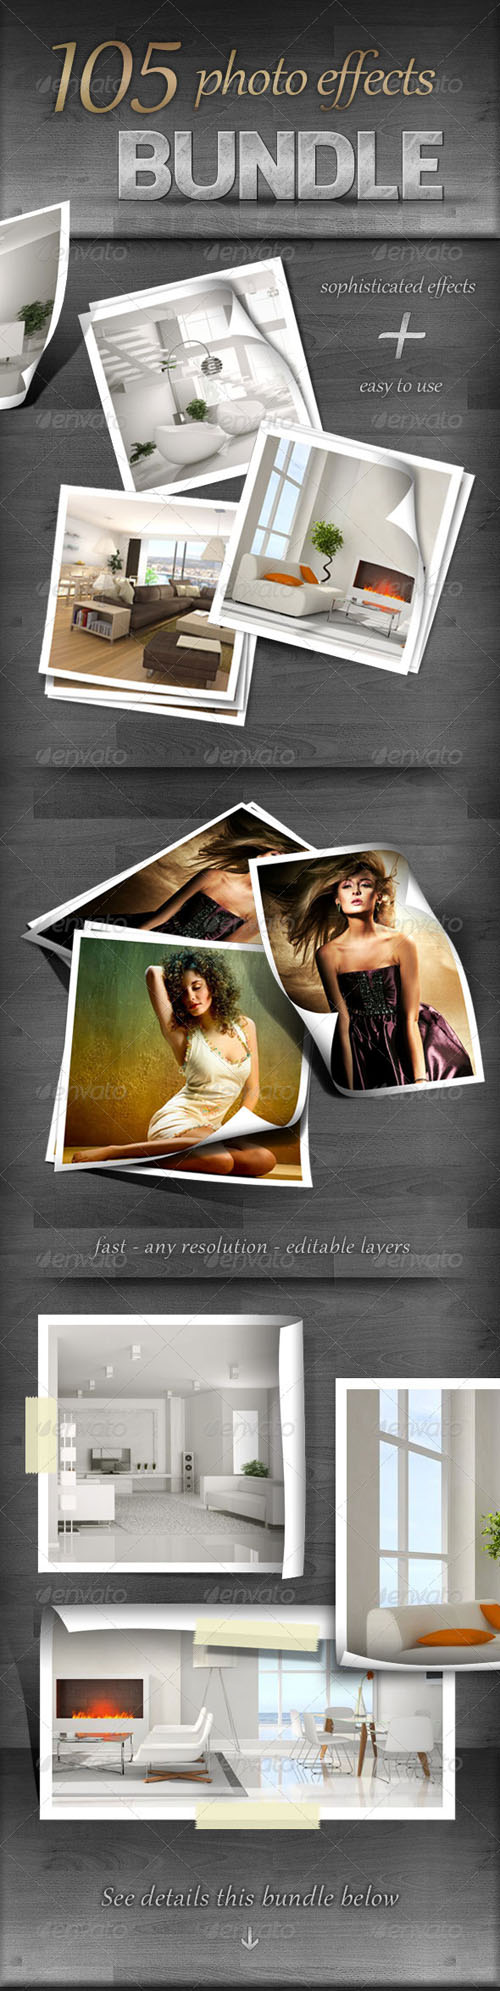 GraphicRiver - 105 Photo Effects - Bundle 723542